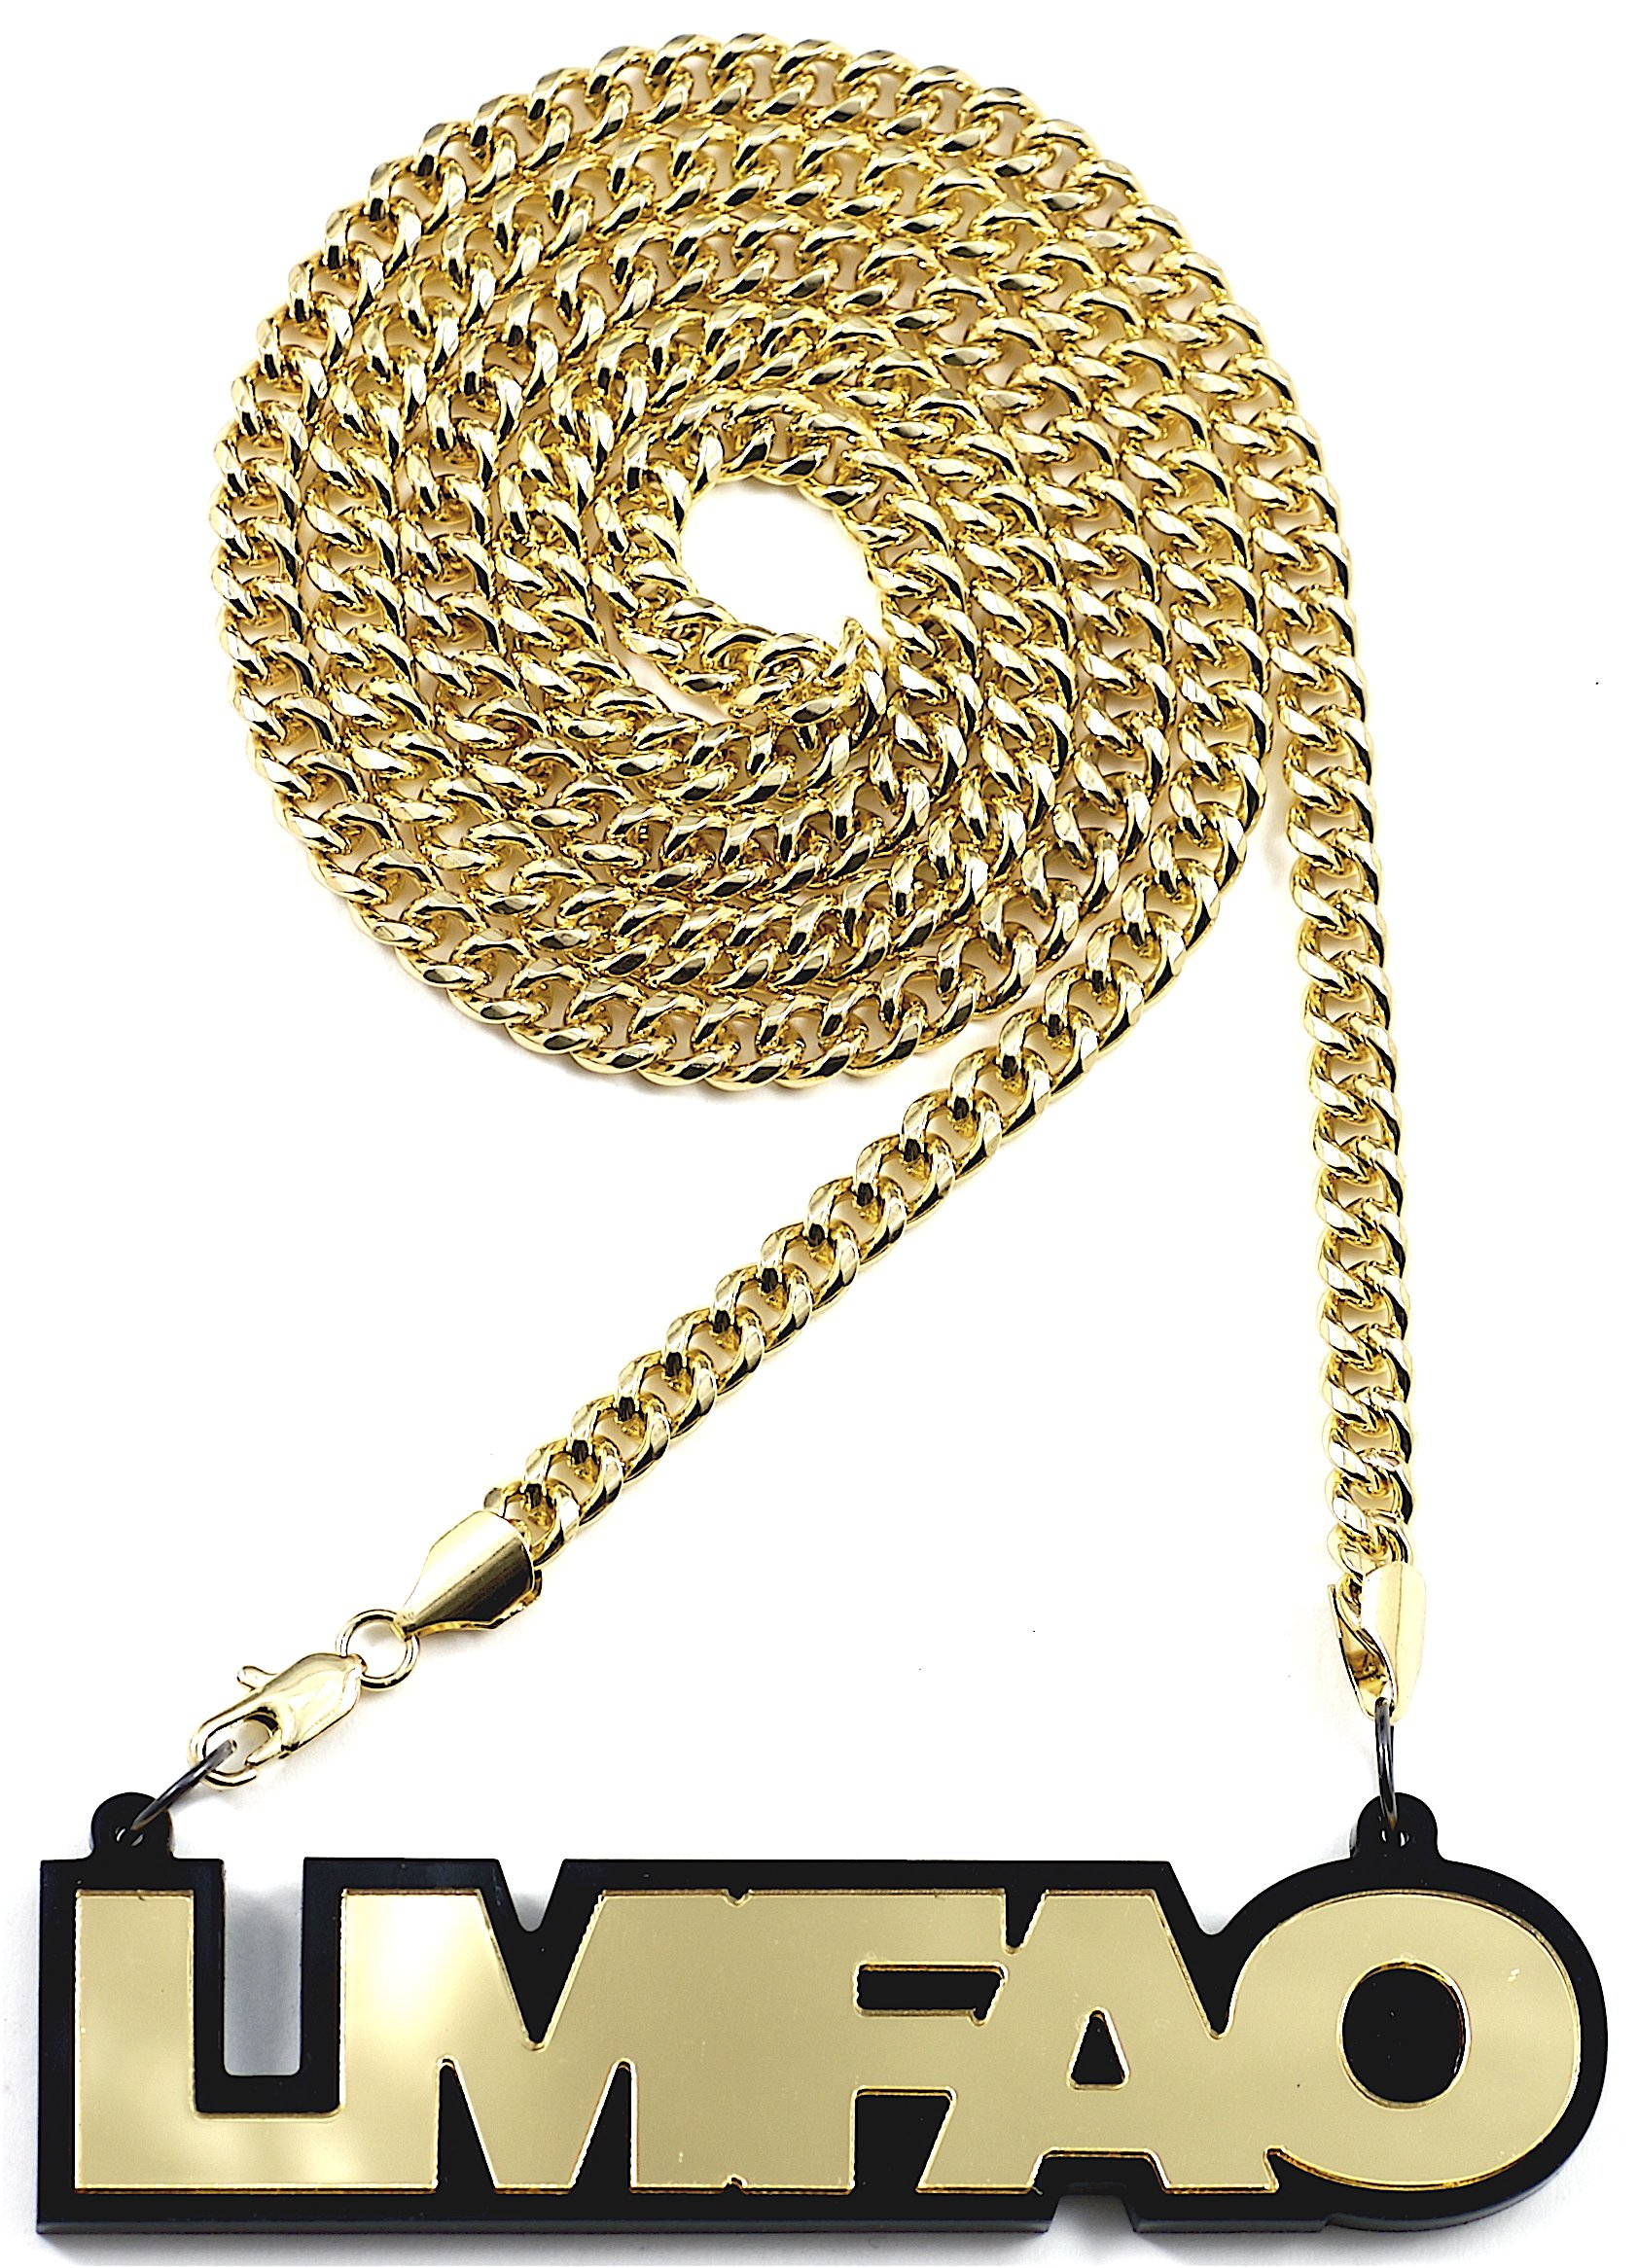 GWOOD LMFAO Acrylic Pendant with Gold Color 36 Inch Necklace